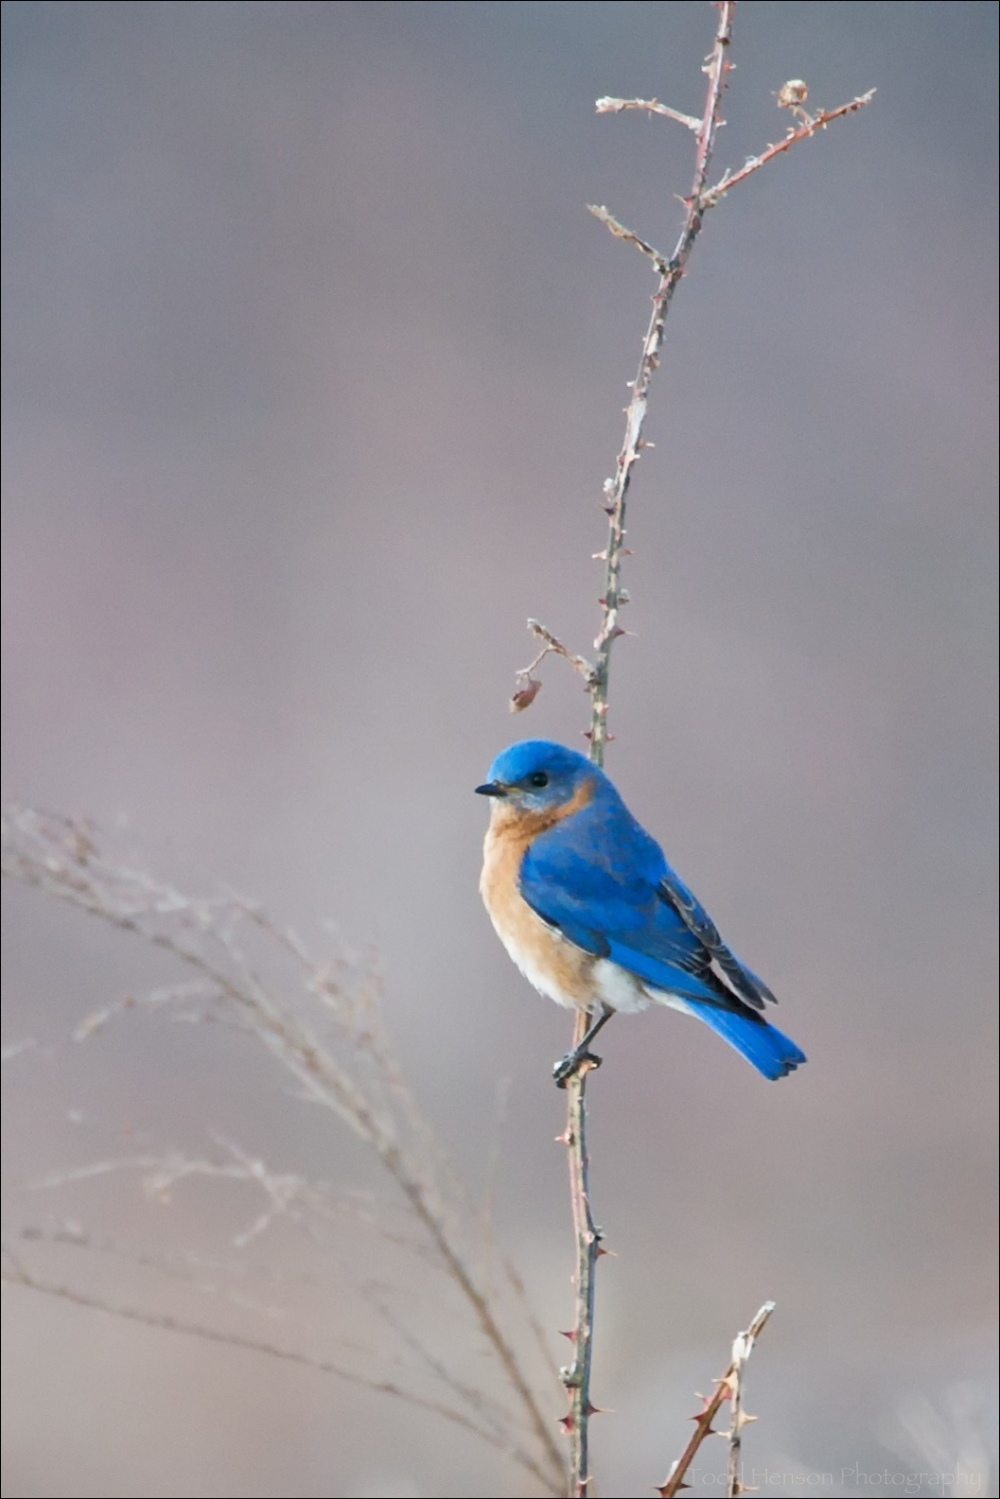 Male Eastern Bluebird perched in field